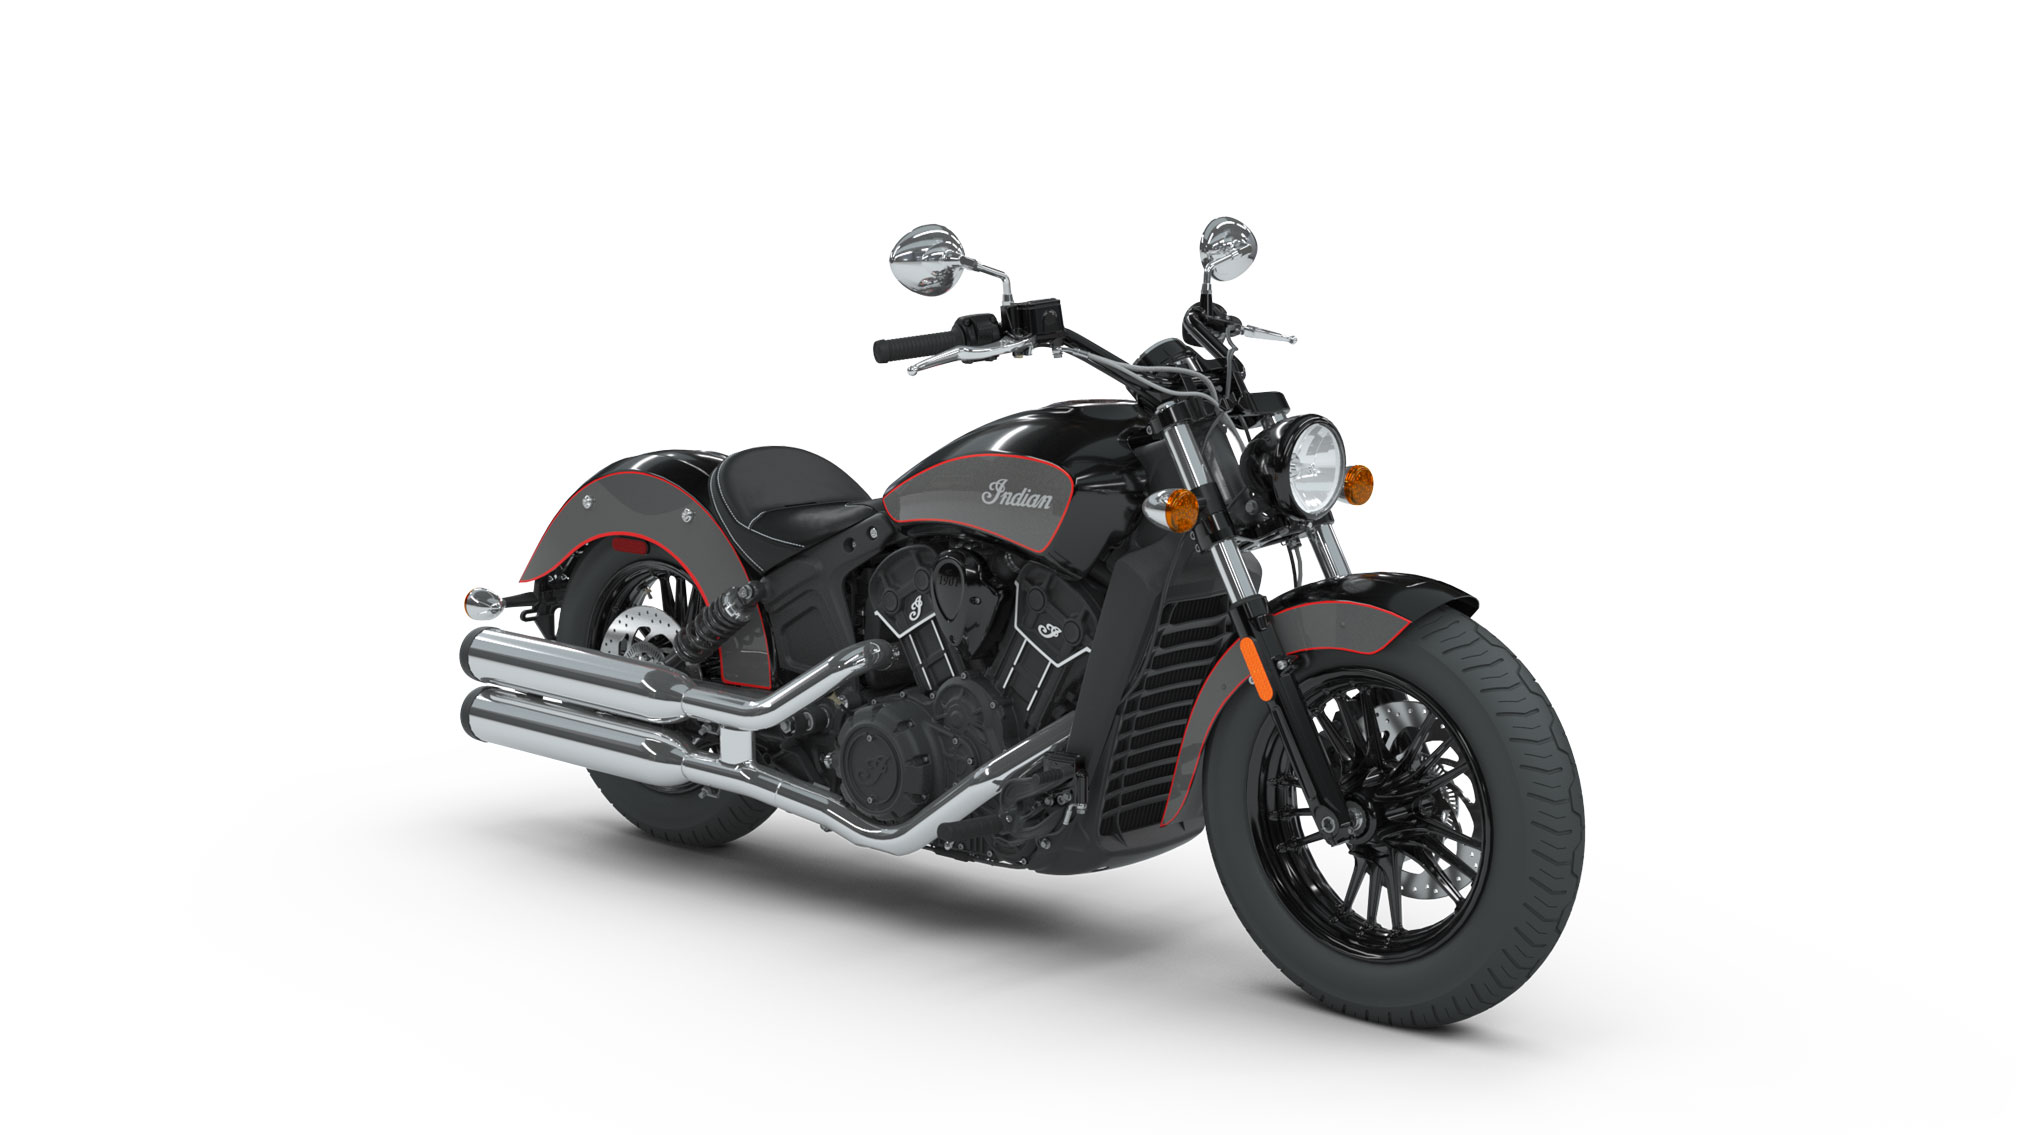 New Honda Motorcycles 2018 >> 2018 Indian Scout Sixty Review - TotalMotorcycle